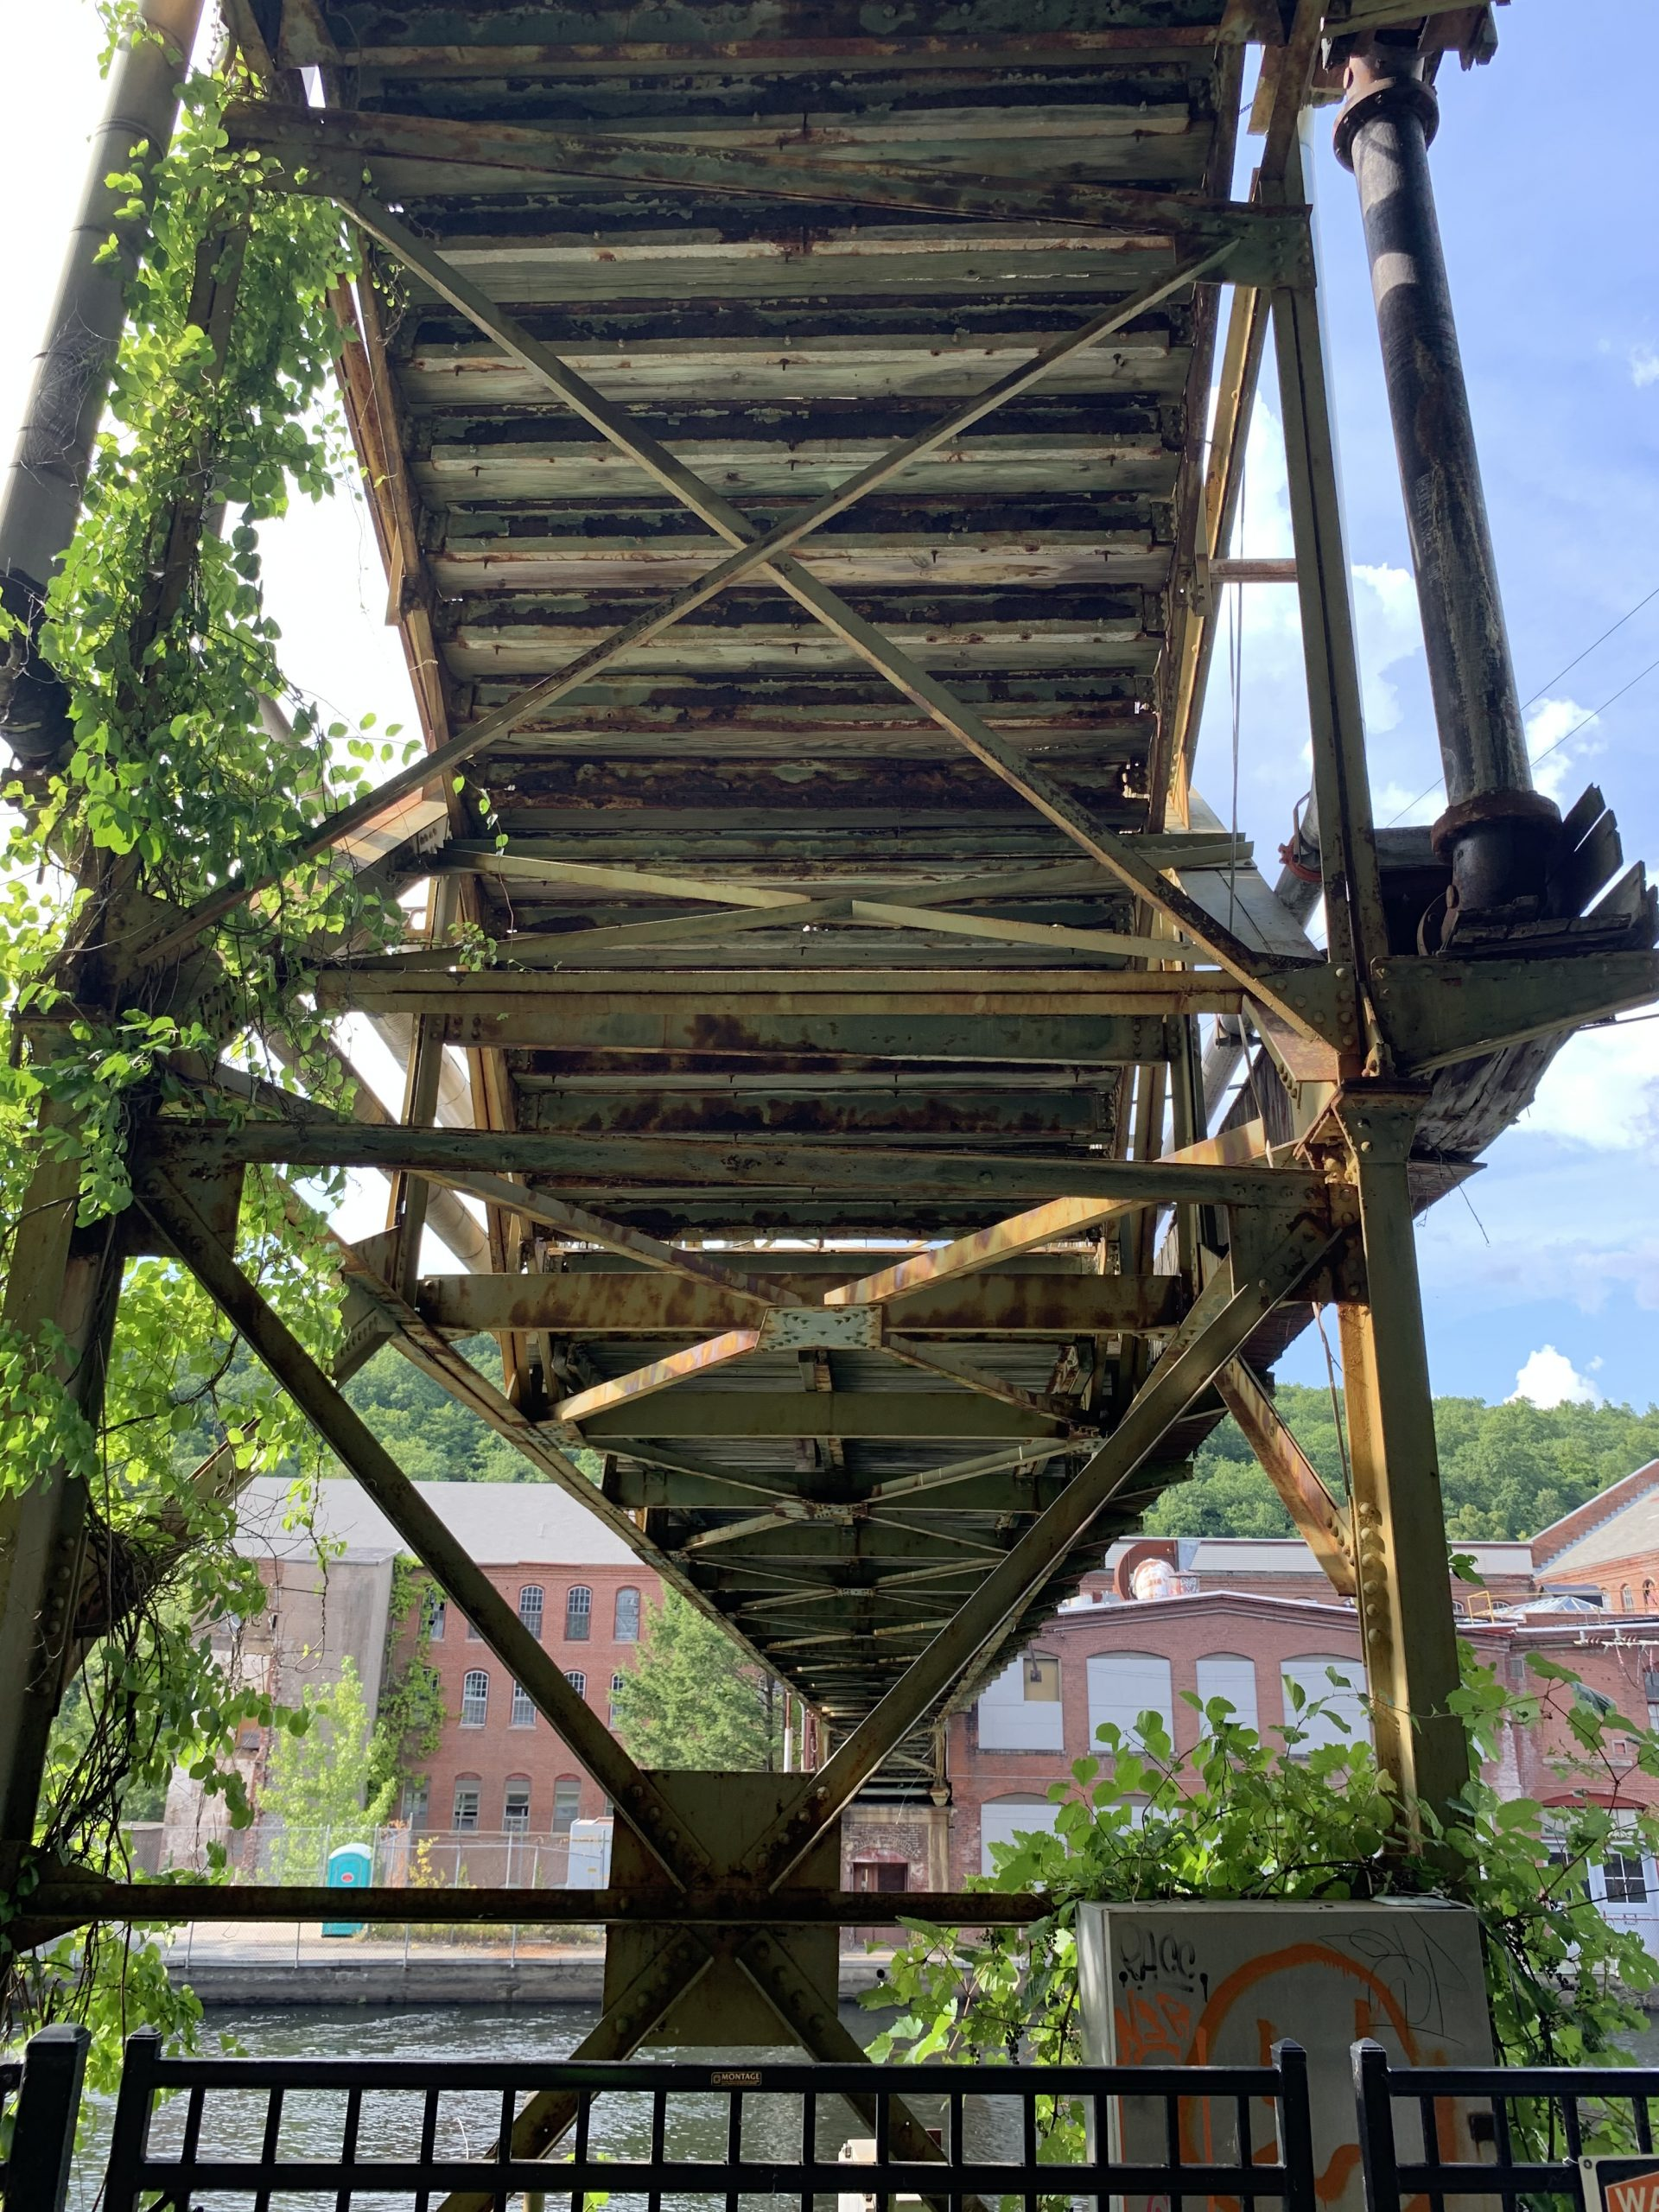 Workers walk bridge, Turners Fall, MA example of post-industrial blight due to ultra-capitalism